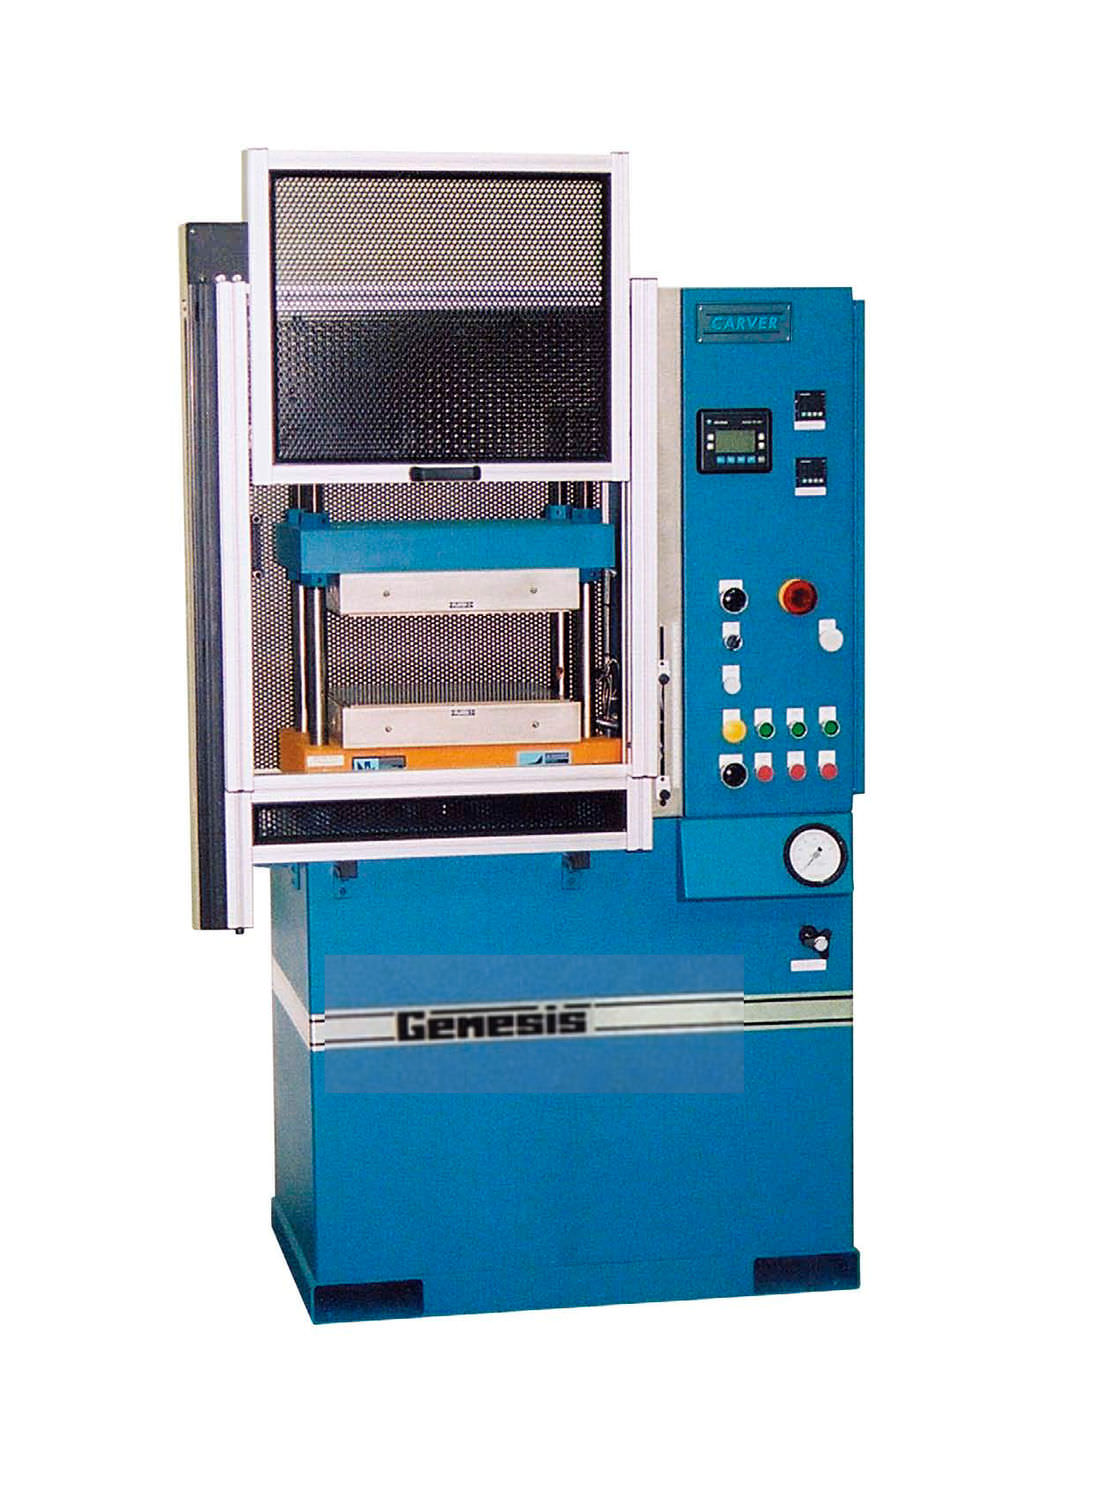 Hydraulic press / compression 15 – 150 t | Genesis series